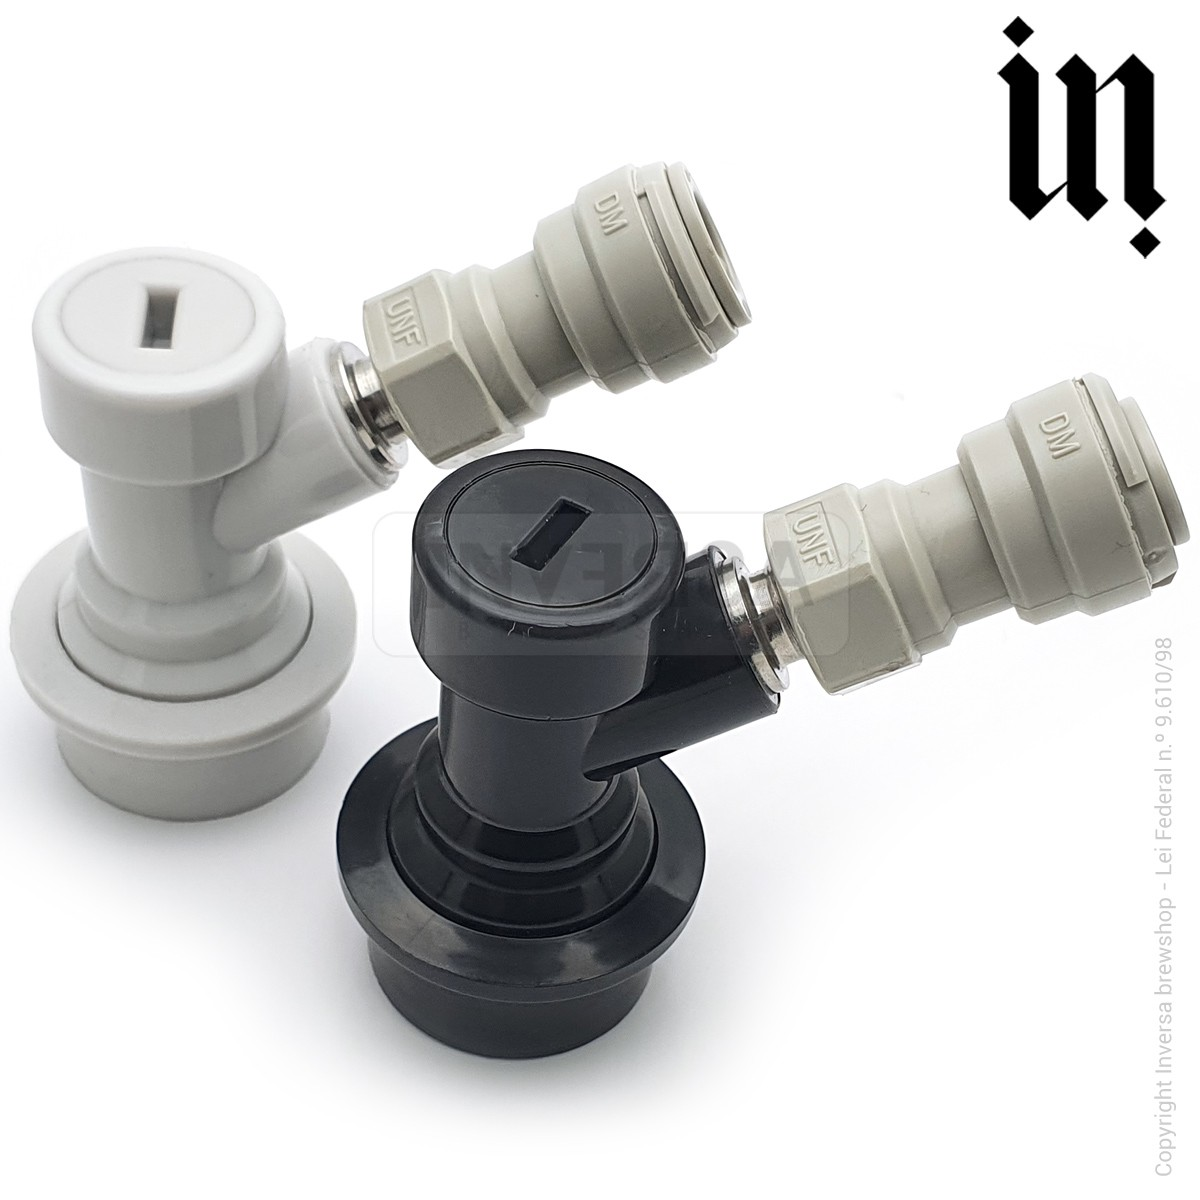 Kit Conector Ball Lock Líquido E Gás Rosca c/ Engate DMfit 3/8